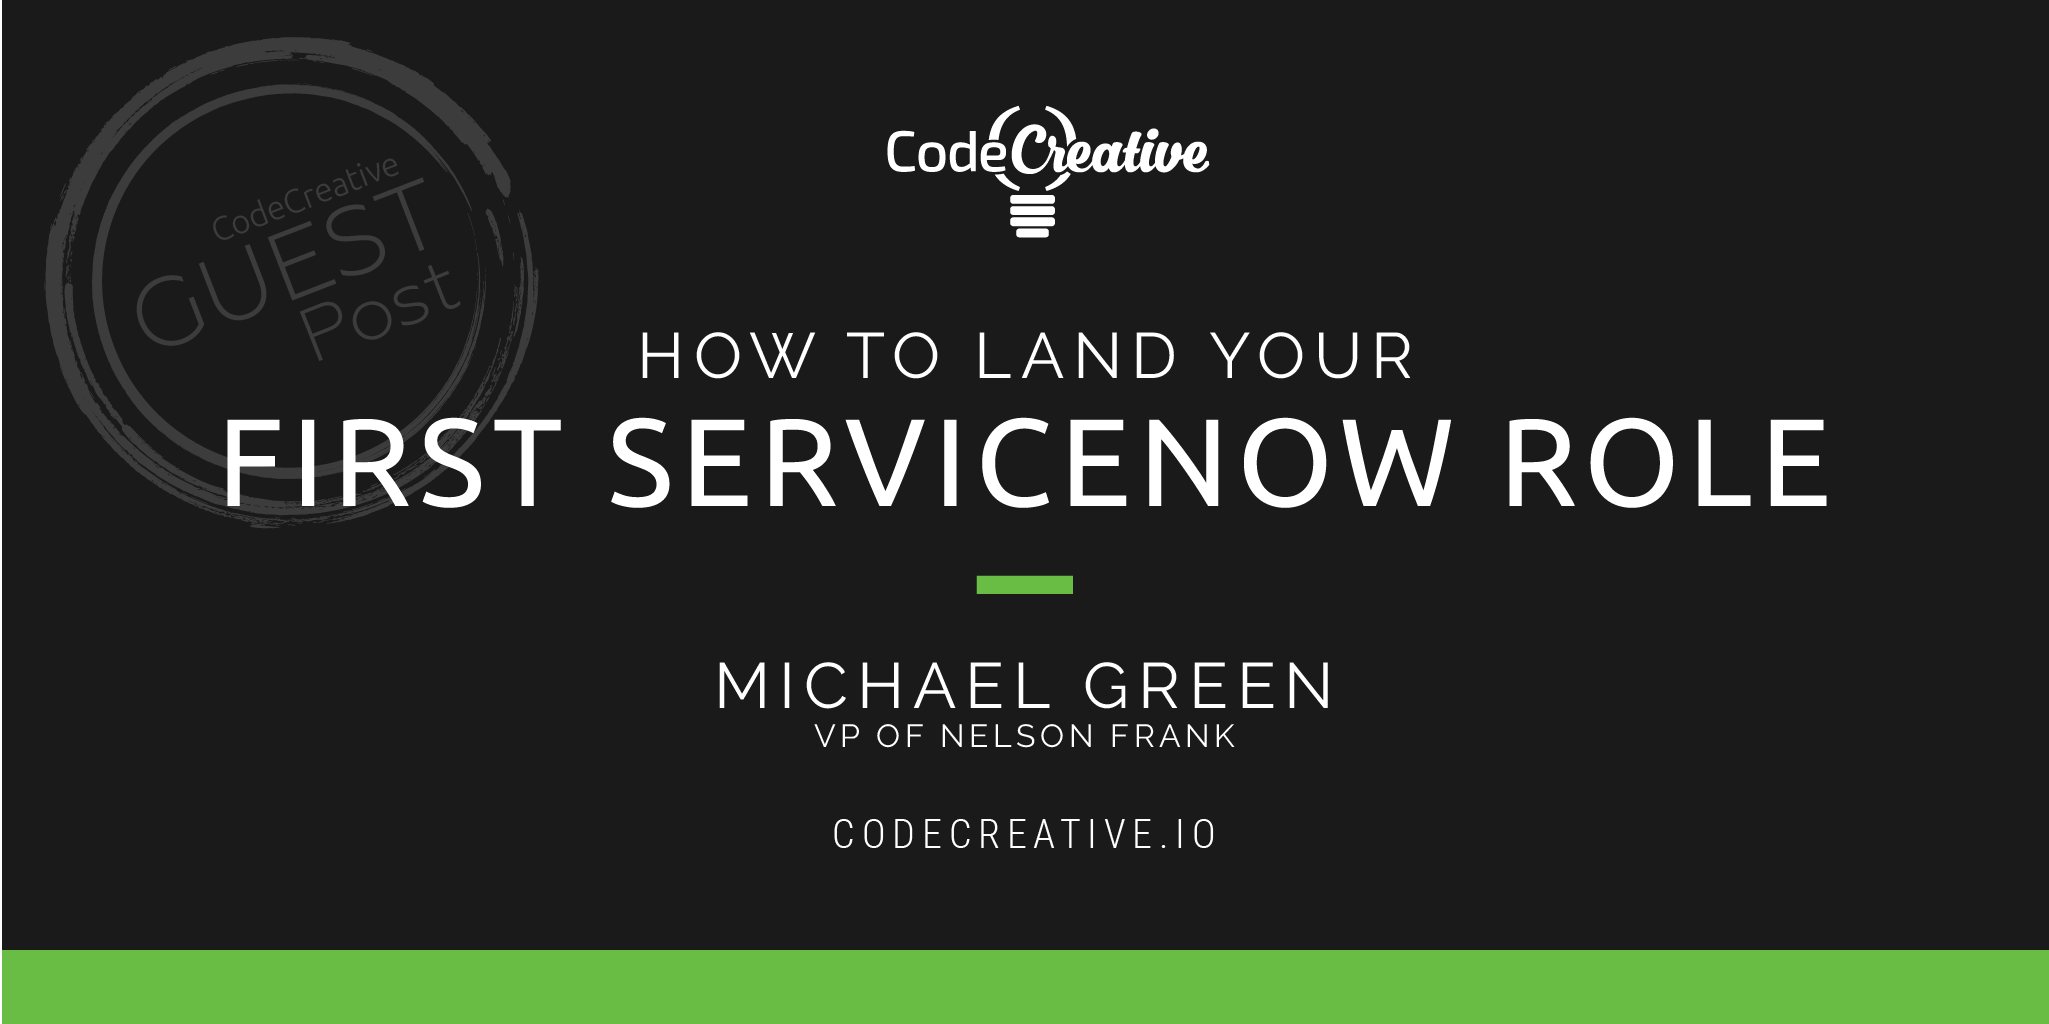 How to land your first ServiceNow role | CodeCreative | A